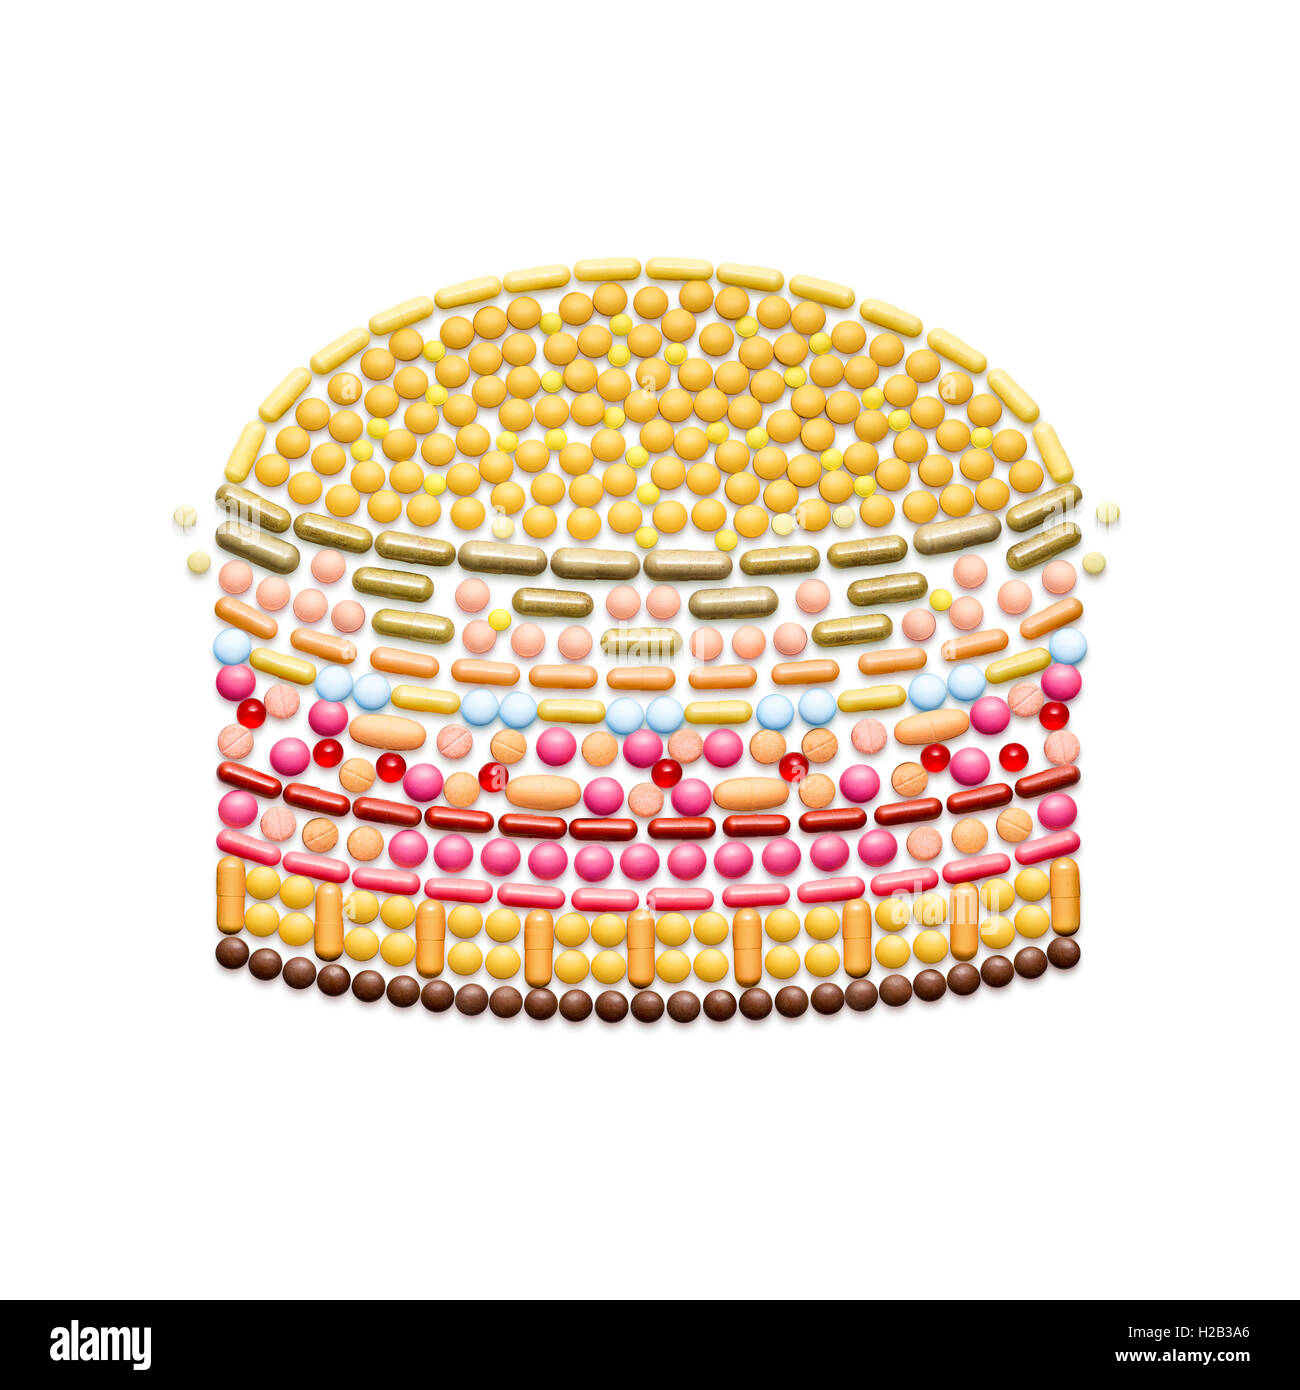 Creative health concept made of drugs and pills, isolated on white. Unhealthy junk food burger. - Stock Image